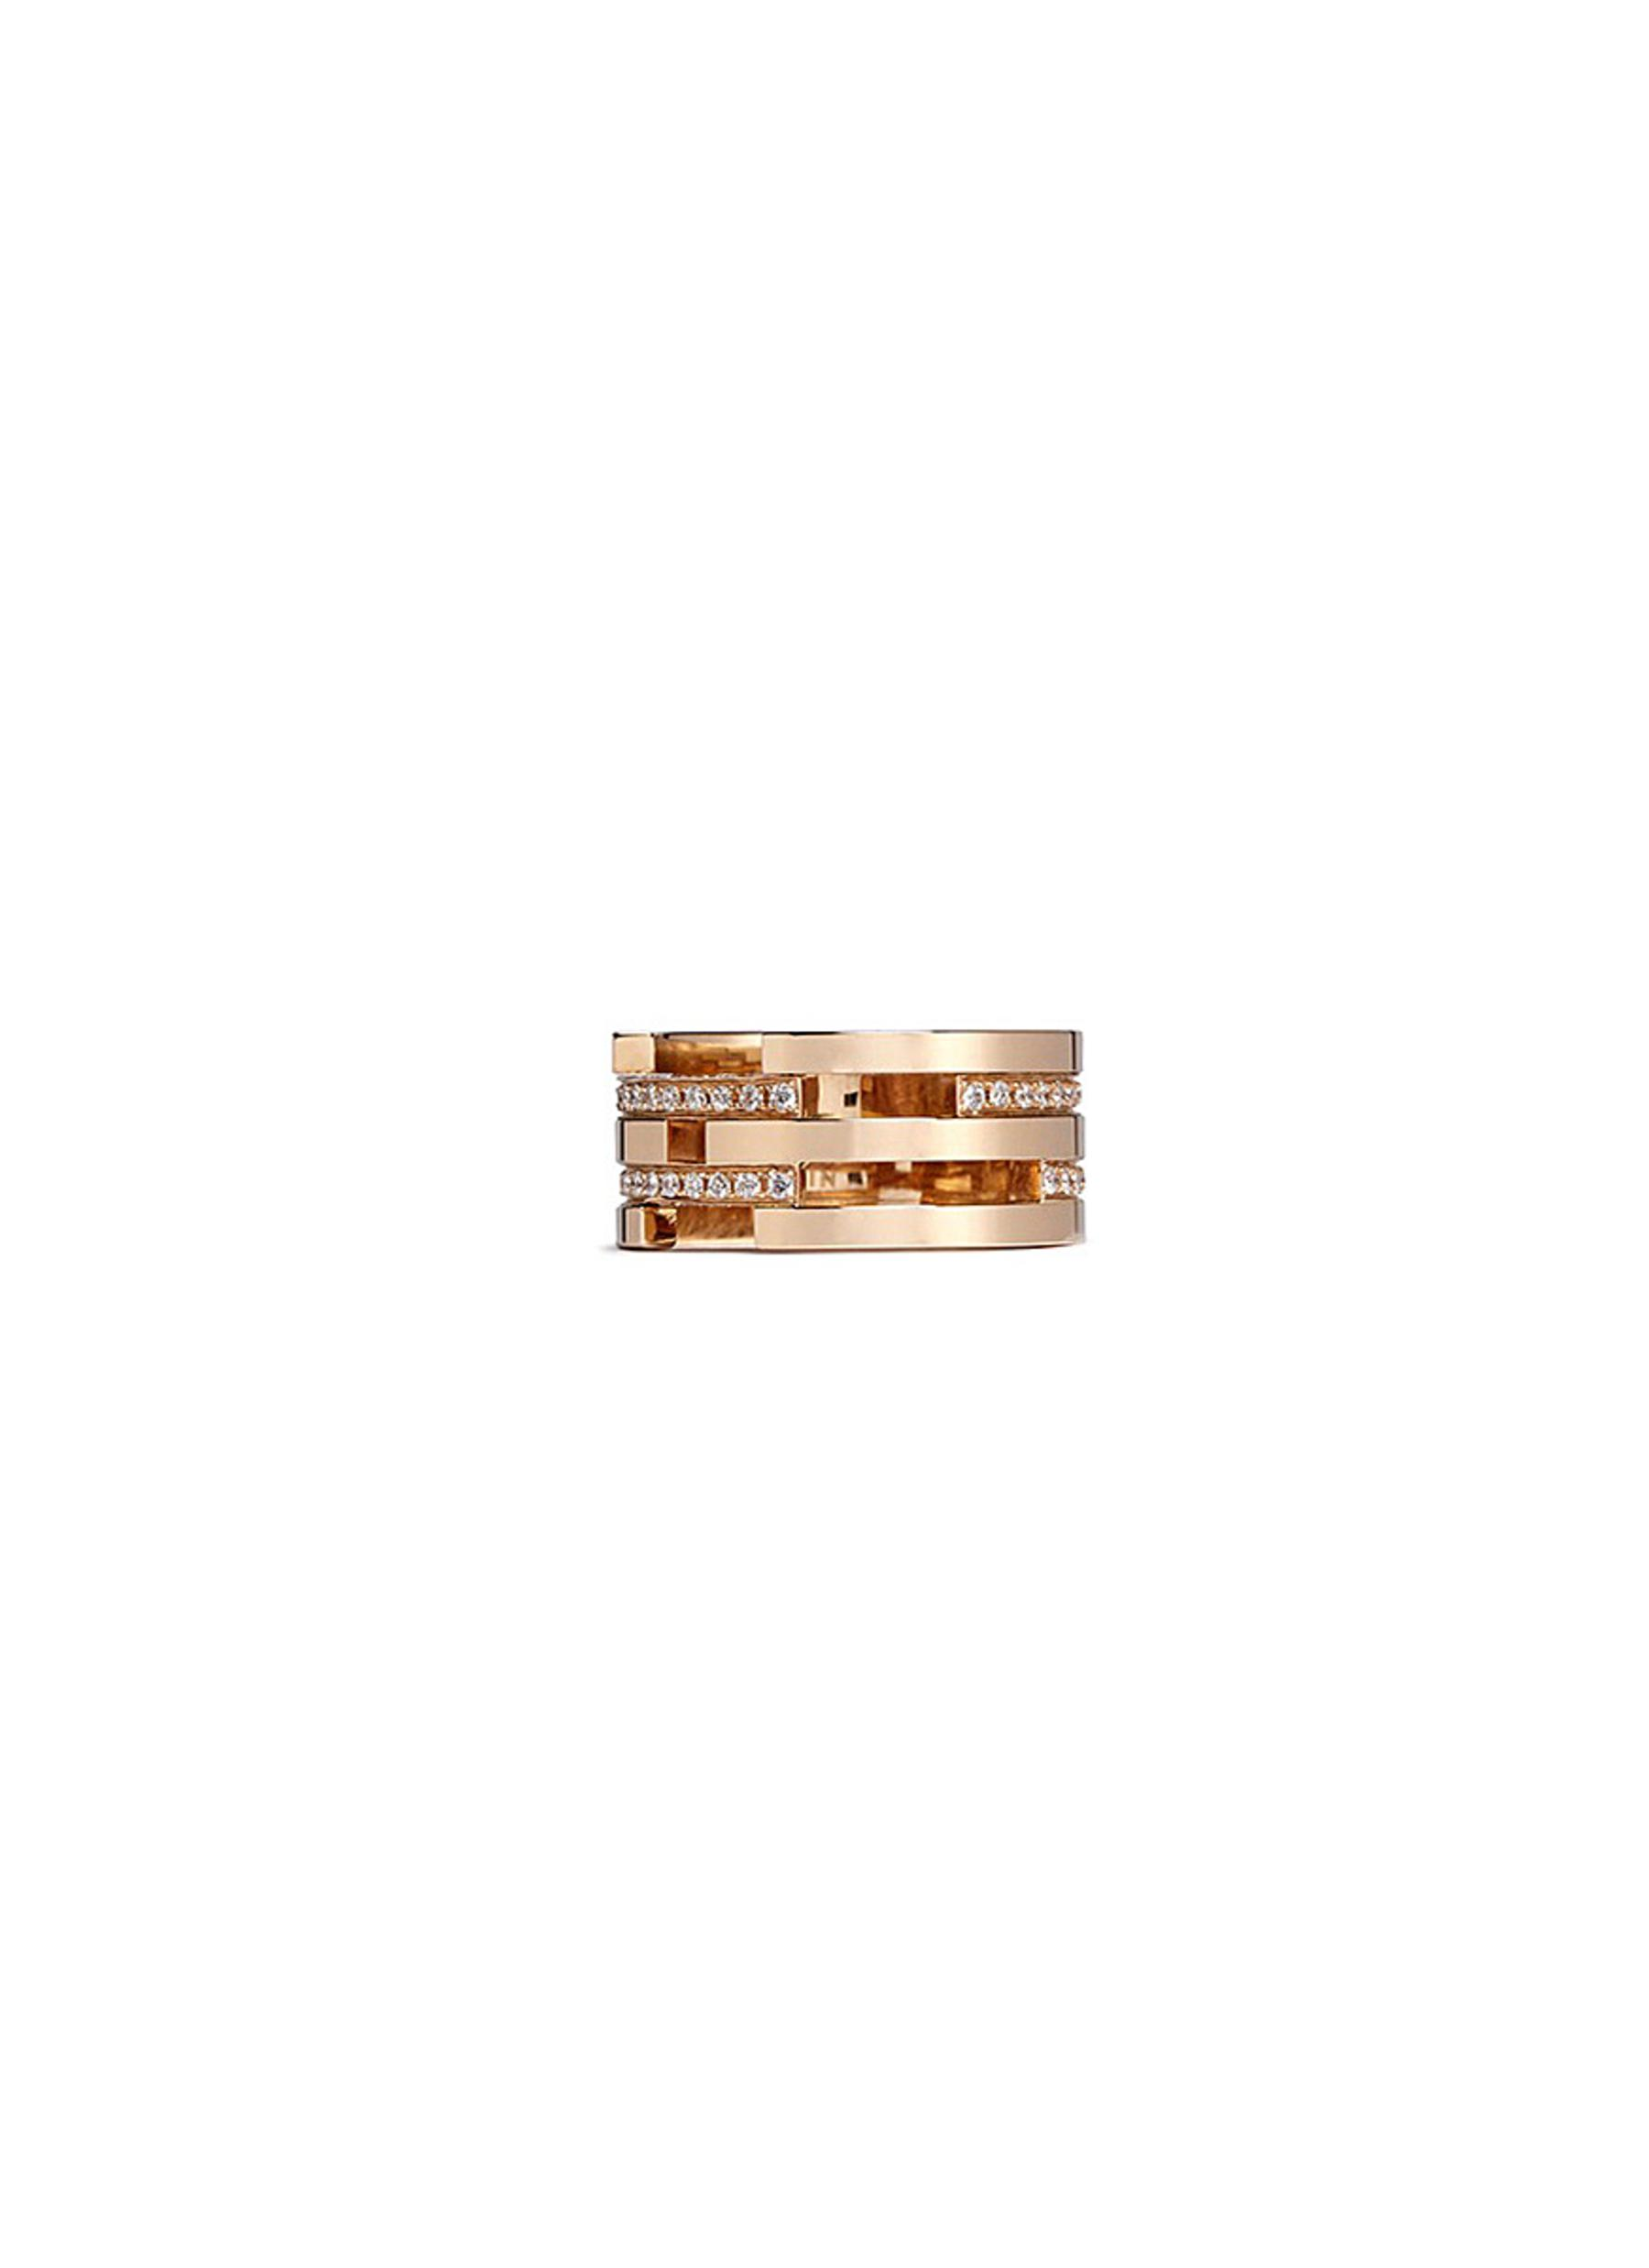 Diamond 18k rose gold five tier cutout ring by Dauphin